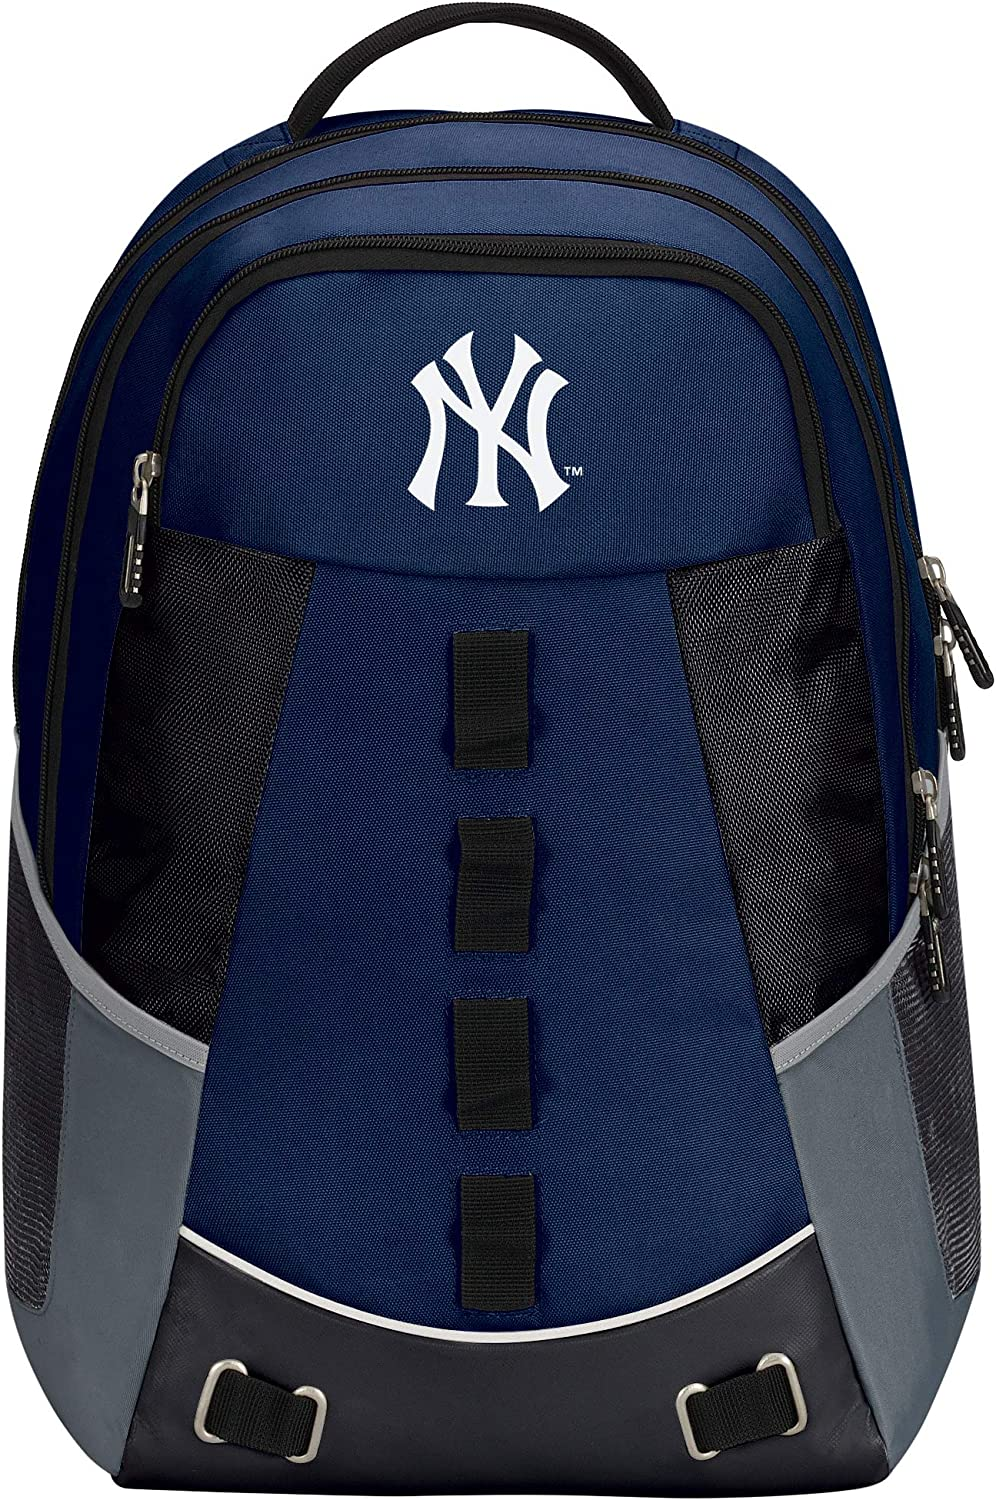 The Northwest Company MLB Unisex Personnel Backpack